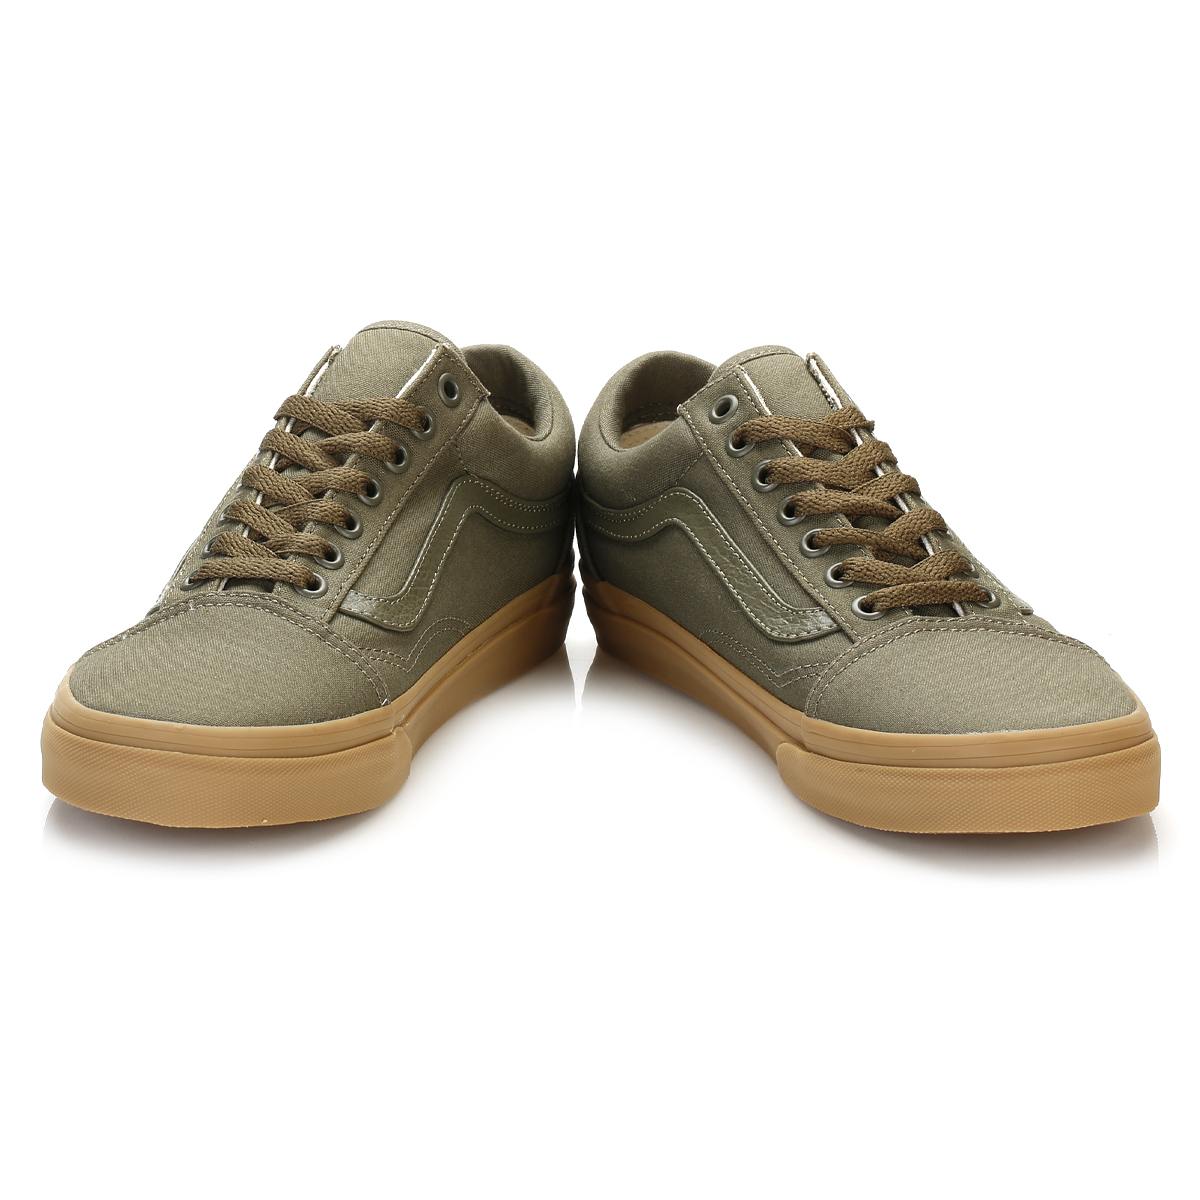 vans old skool gum sole ivy green